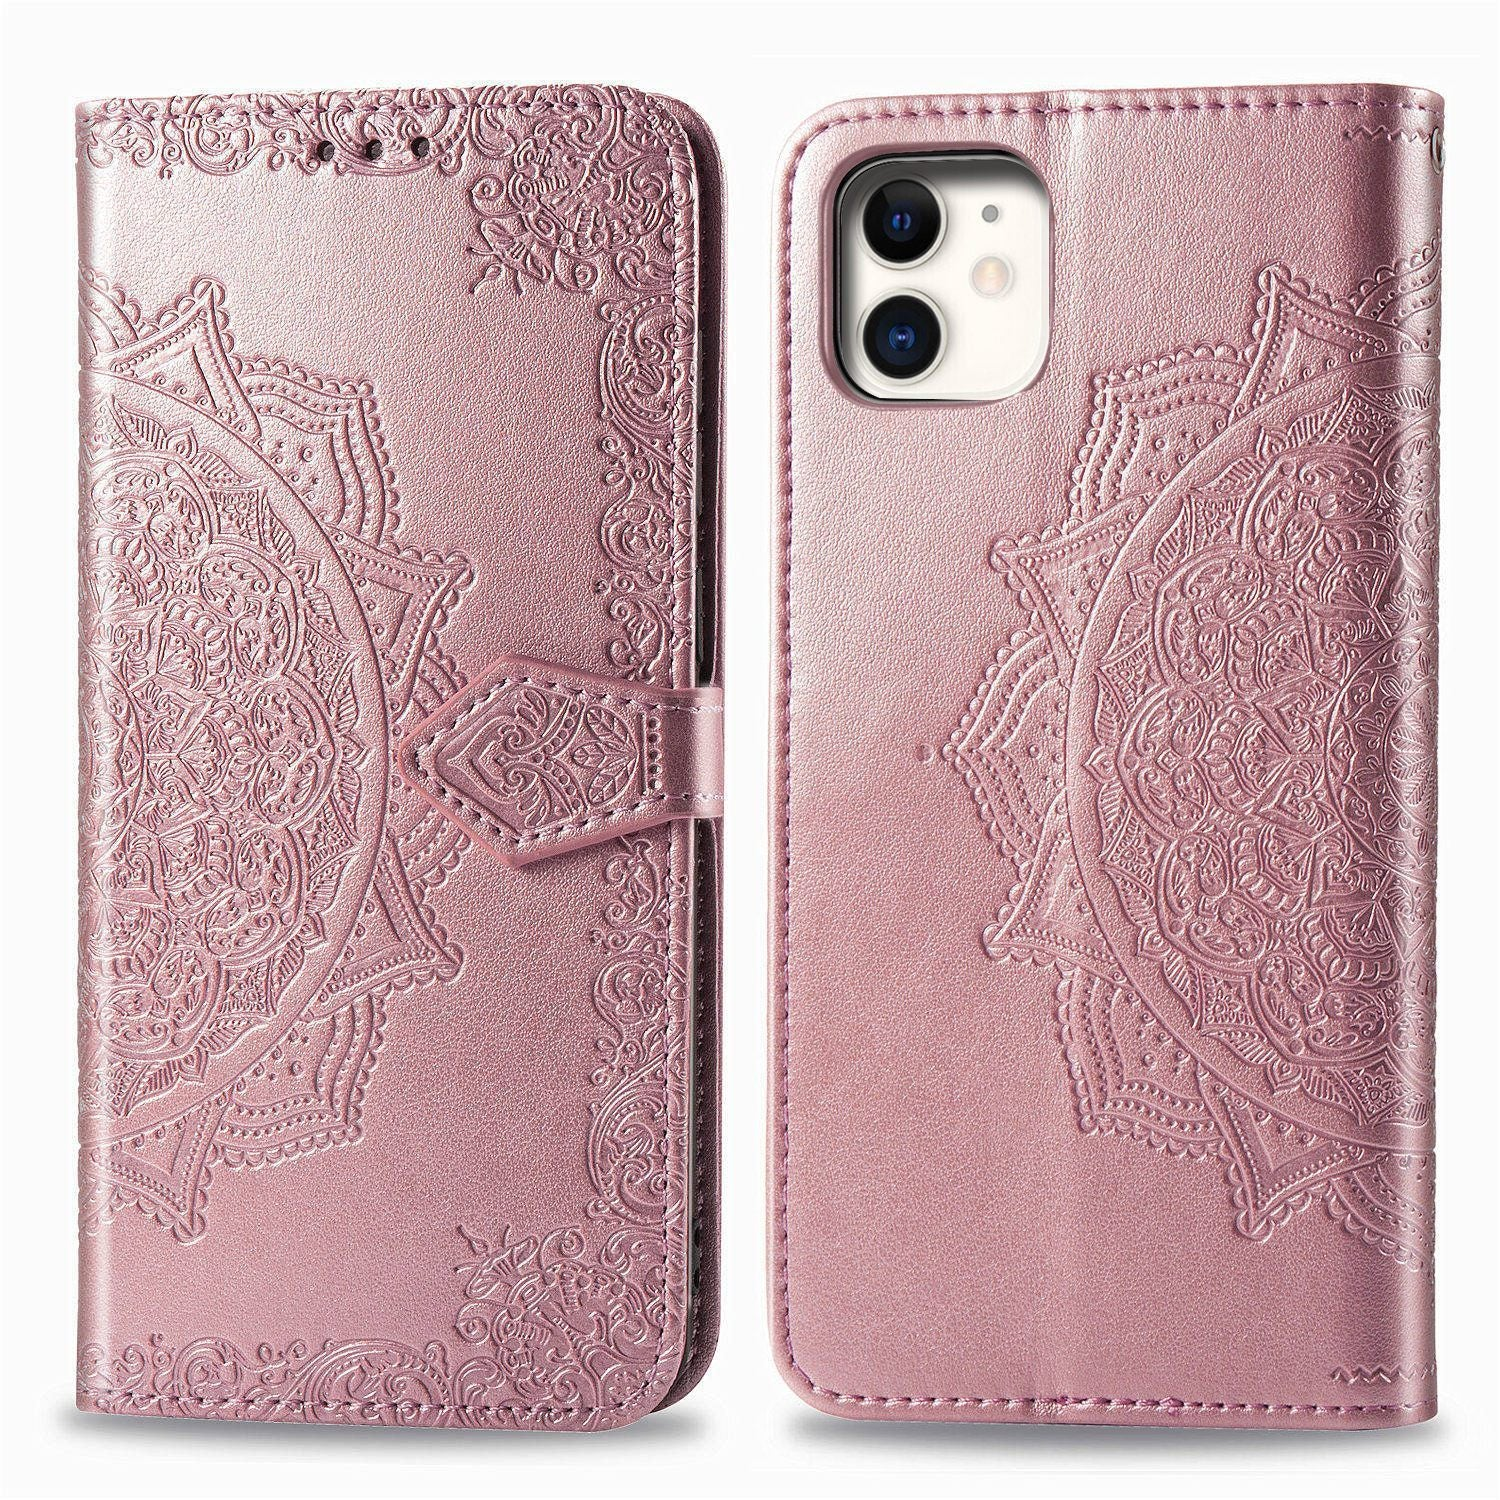 2020 Luxury Embossed Mandala Leather Wallet Flip Case for iPhone 11